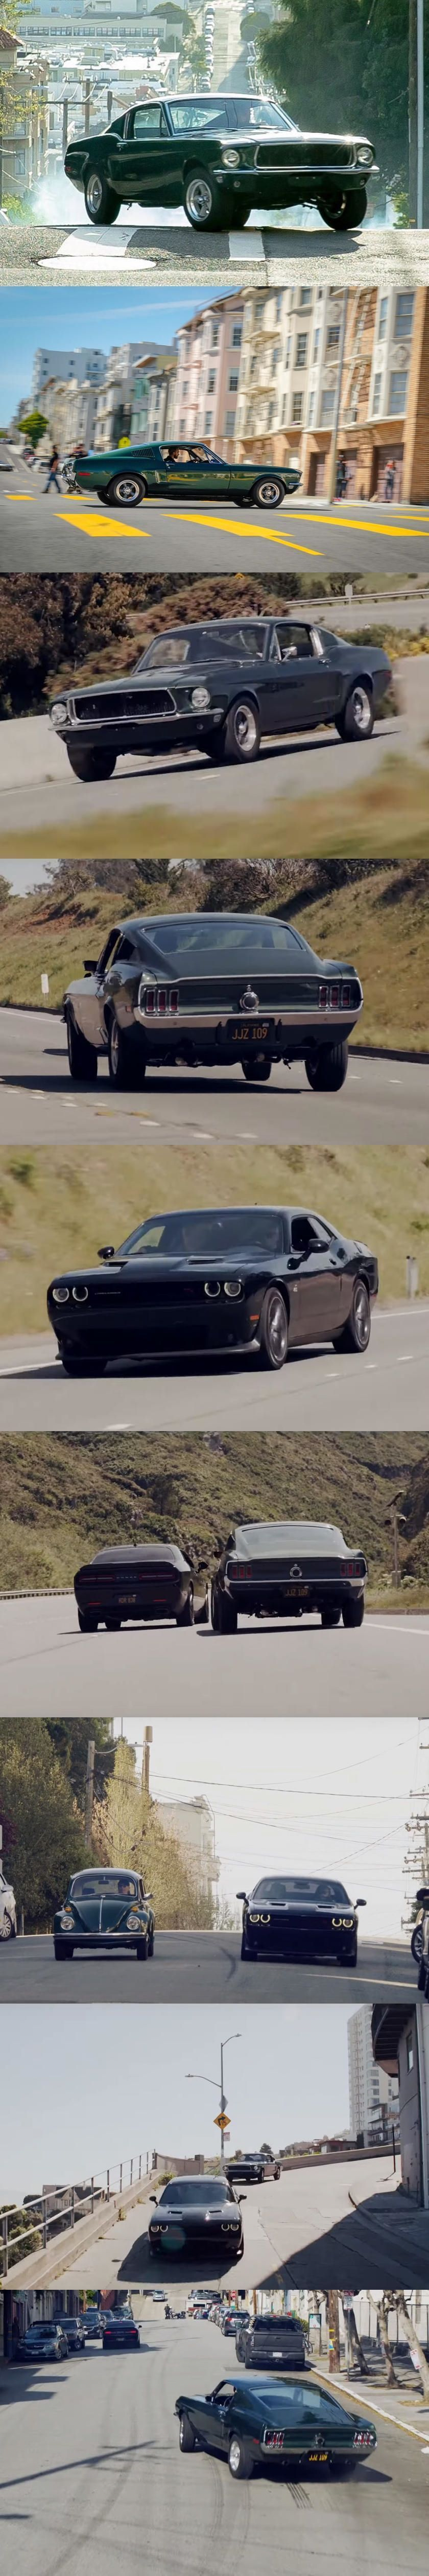 Someone Tore Through San Francisco To Recreate Bullitt Chase Scene. The guys at Gas Monkey Garage have recreated one of Hollywood's most famous car chase scenes. #gasmonkeygarage Someone Tore Through San Francisco To Recreate Bullitt Chase Scene. The guys at Gas Monkey Garage have recreated one of Hollywood's most famous car chase scenes. #gasmonkeygarage Someone Tore Through San Francisco To Recreate Bullitt Chase Scene. The guys at Gas Monkey Garage have recreated one of Hollywood's most famou #gasmonkeygarage